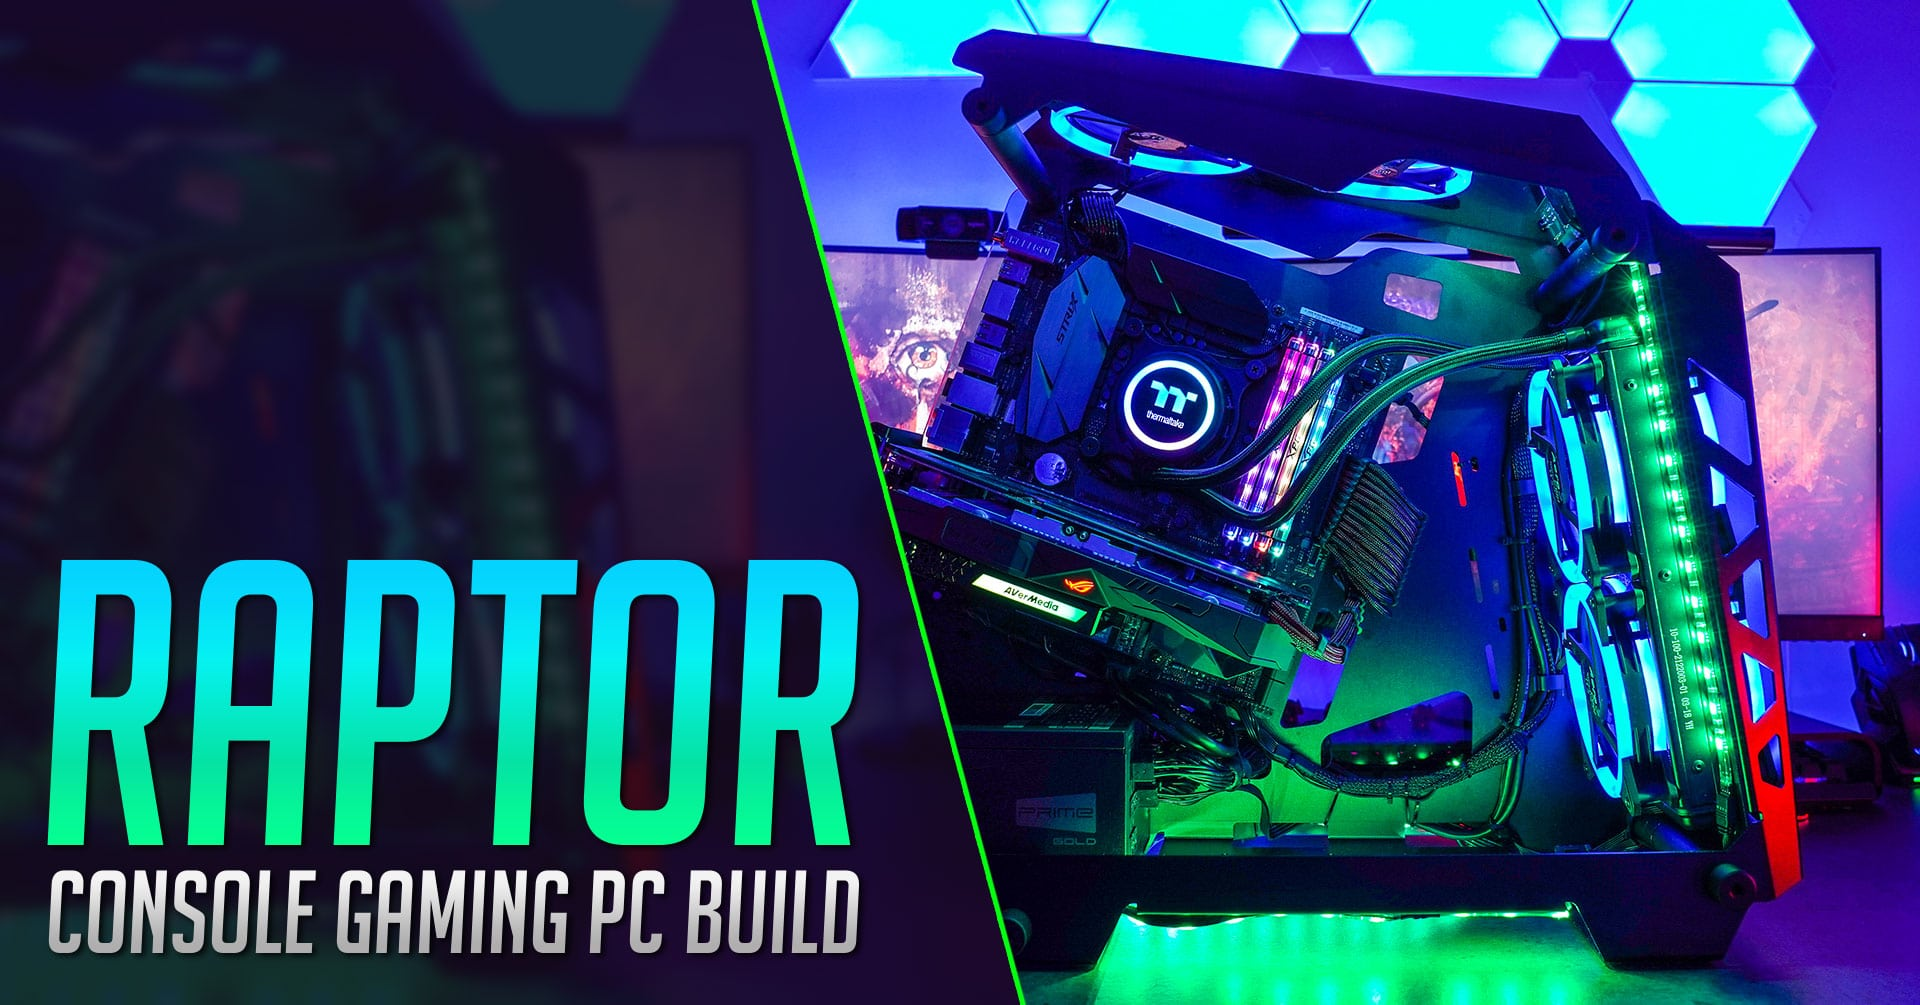 RAPTOR Ultimate Console Gaming PC Build